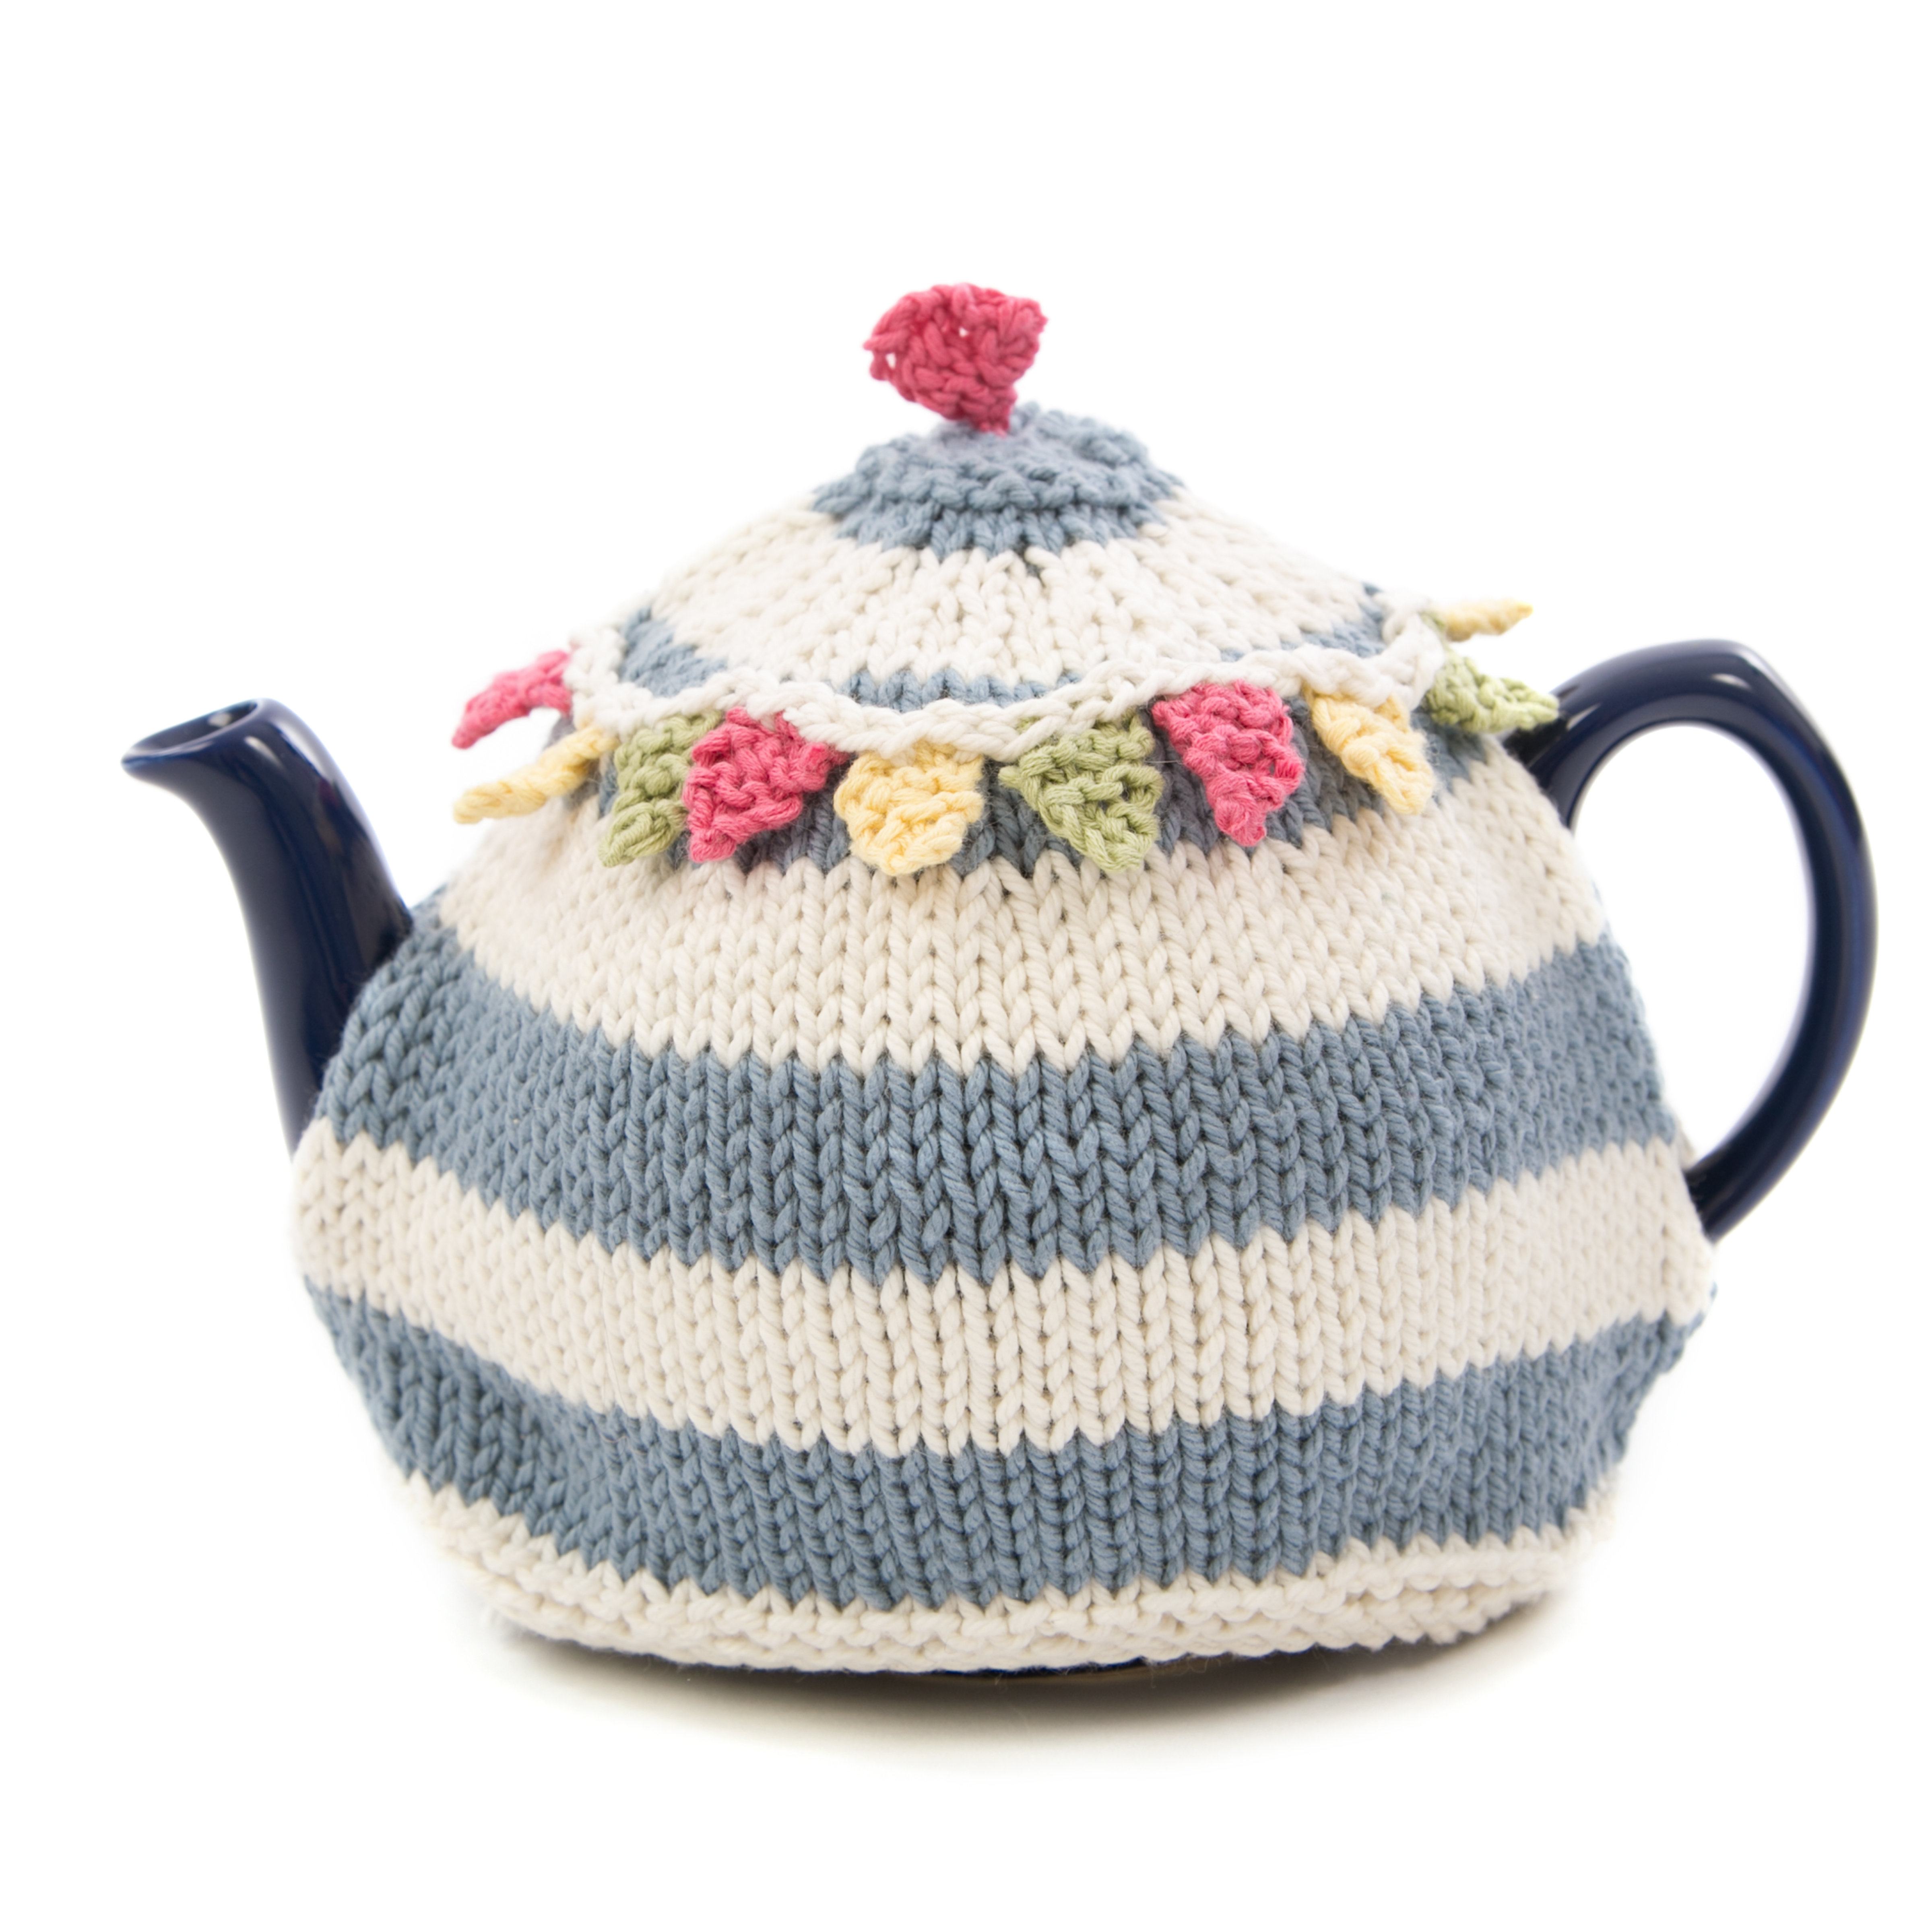 Tea Cosy Patterns To Knit Summer Bunting Tea Cosy